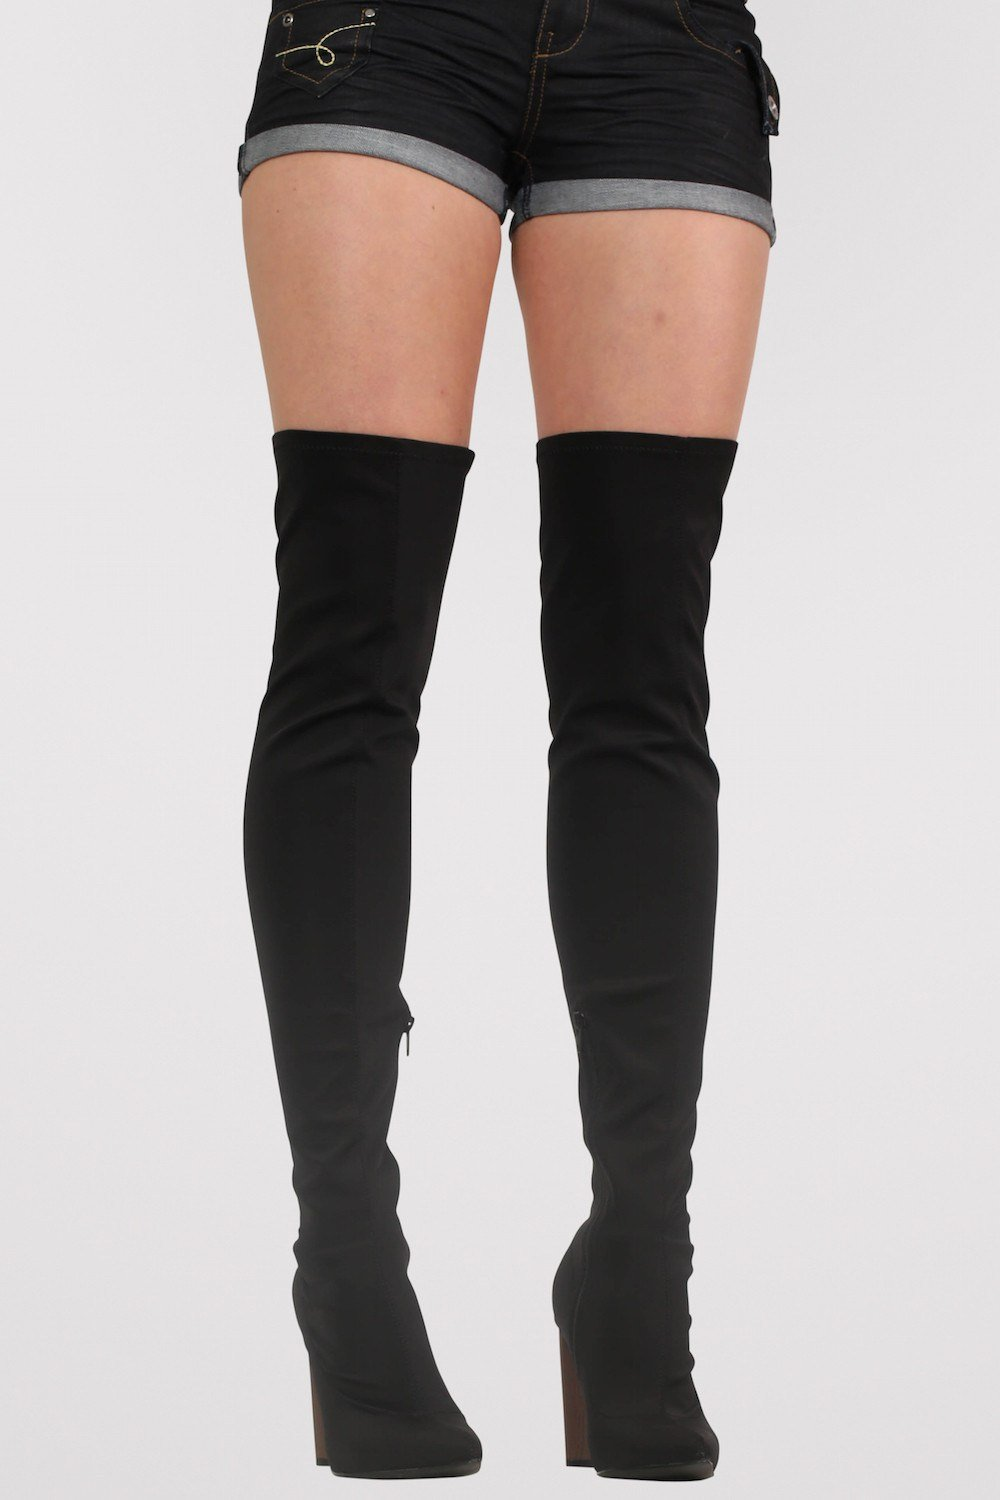 Over The Knee High Heeled Neoprene Boots in Black 0